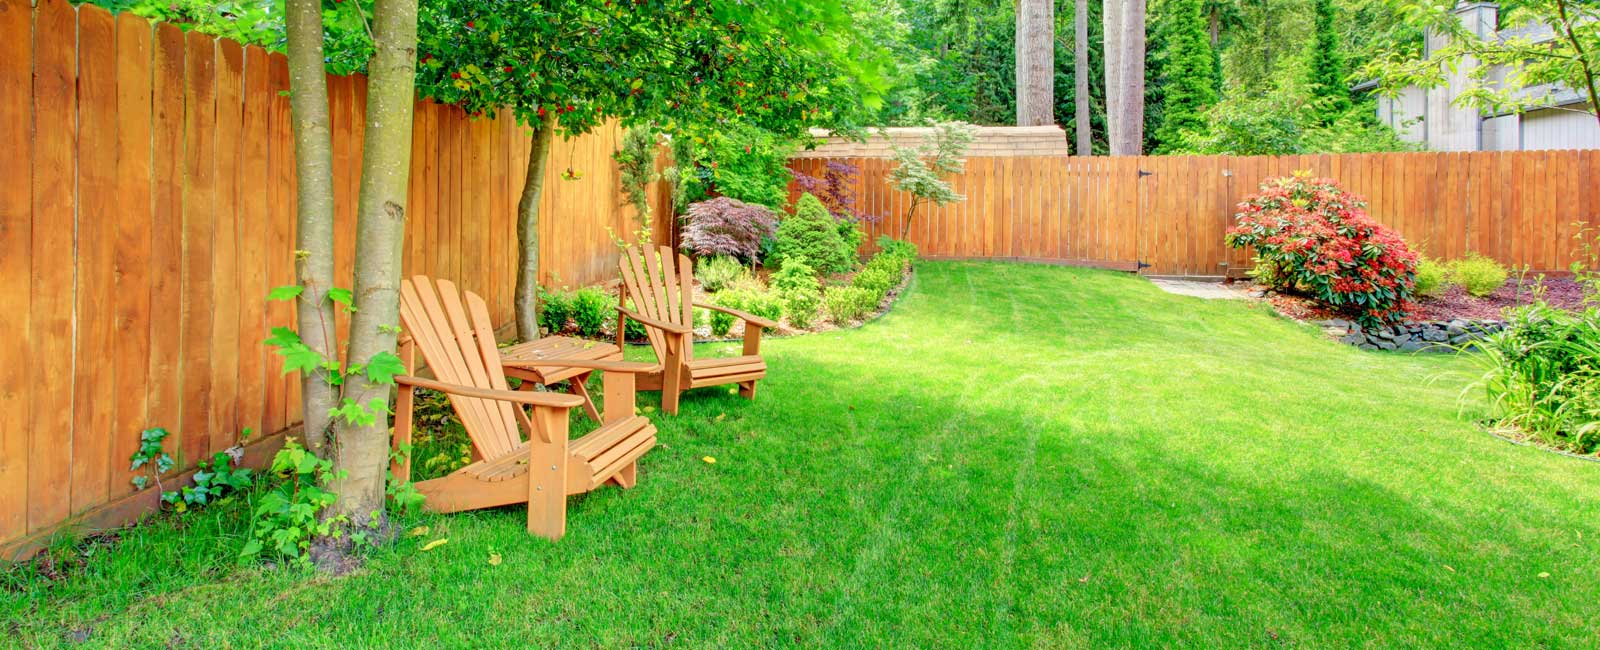 backyard lawn with landscaping